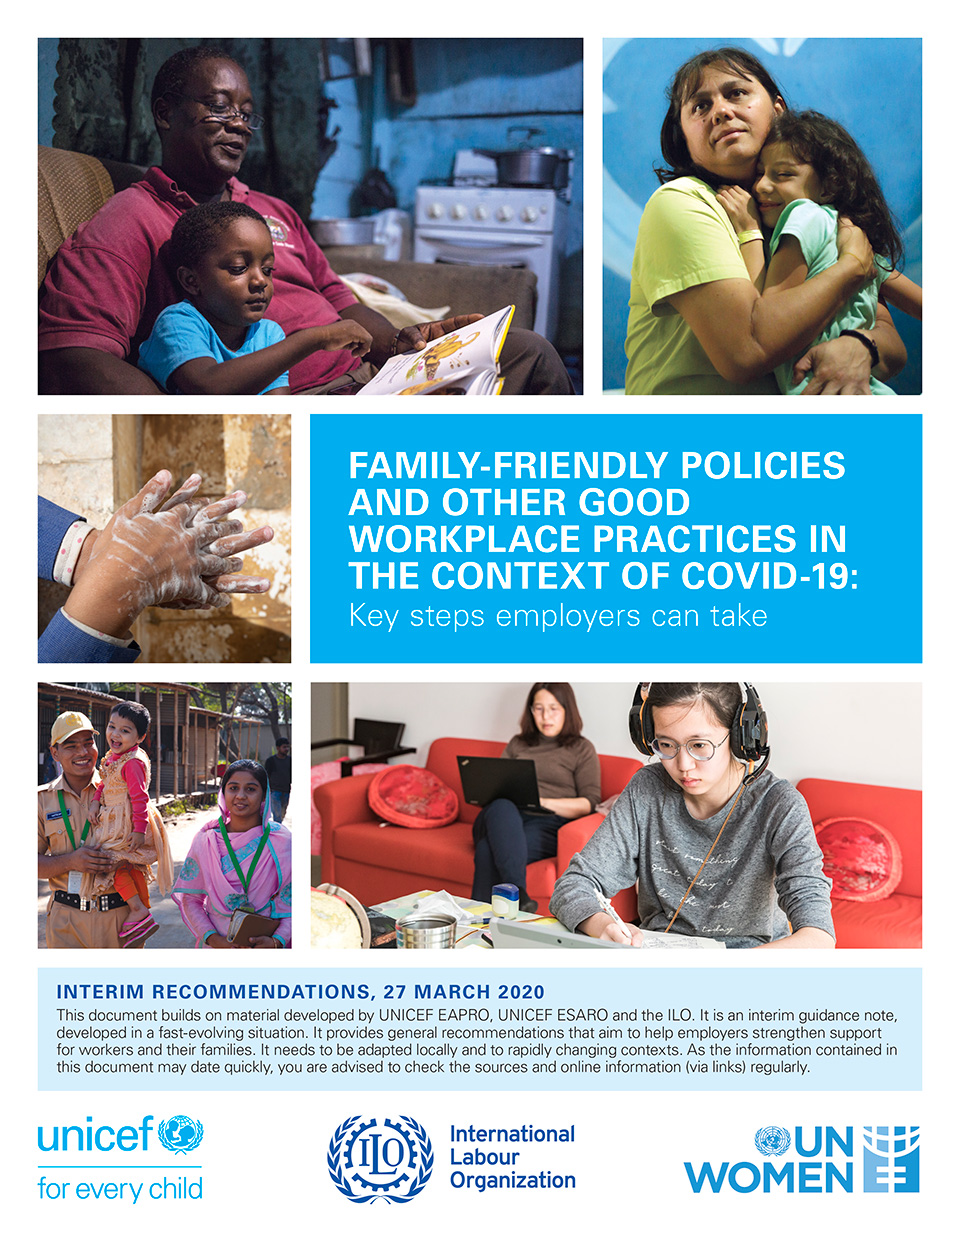 """Download the preliminary technical note from UNICEF, ILO and UN Women on family-friendly policies and other good workplace practices in the context of COVID-19 <a href=""""https://www.unicef.org/documents/family-friendly-policies-and-other-good-workplace-practices-context-covid-19-key-steps"""">here</a>"""